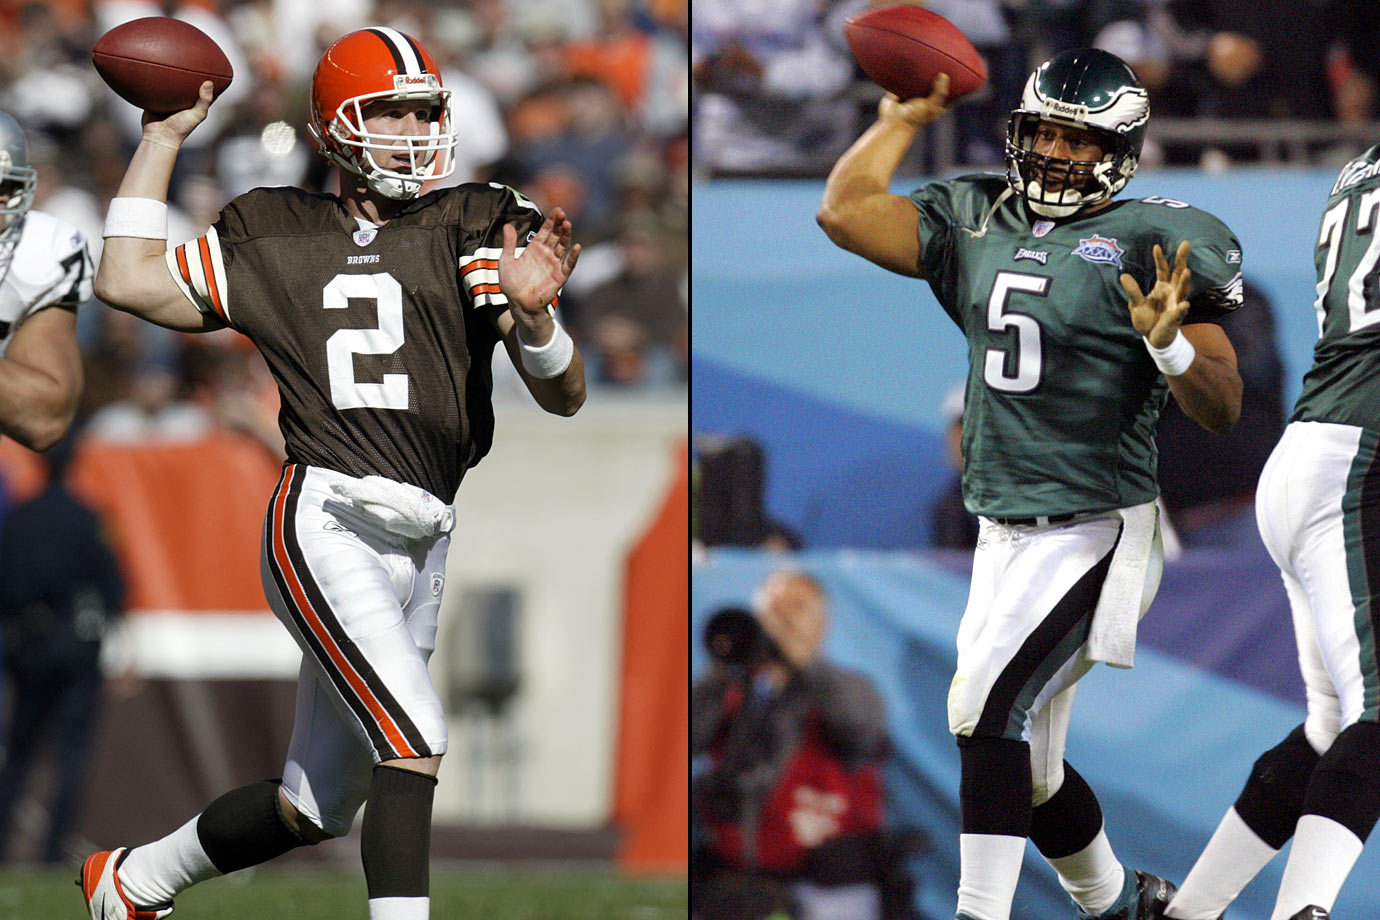 1999: 1—Tim Couch (Cleveland Browns), 2—Donovan McNabb (Philadelphia Eagles)